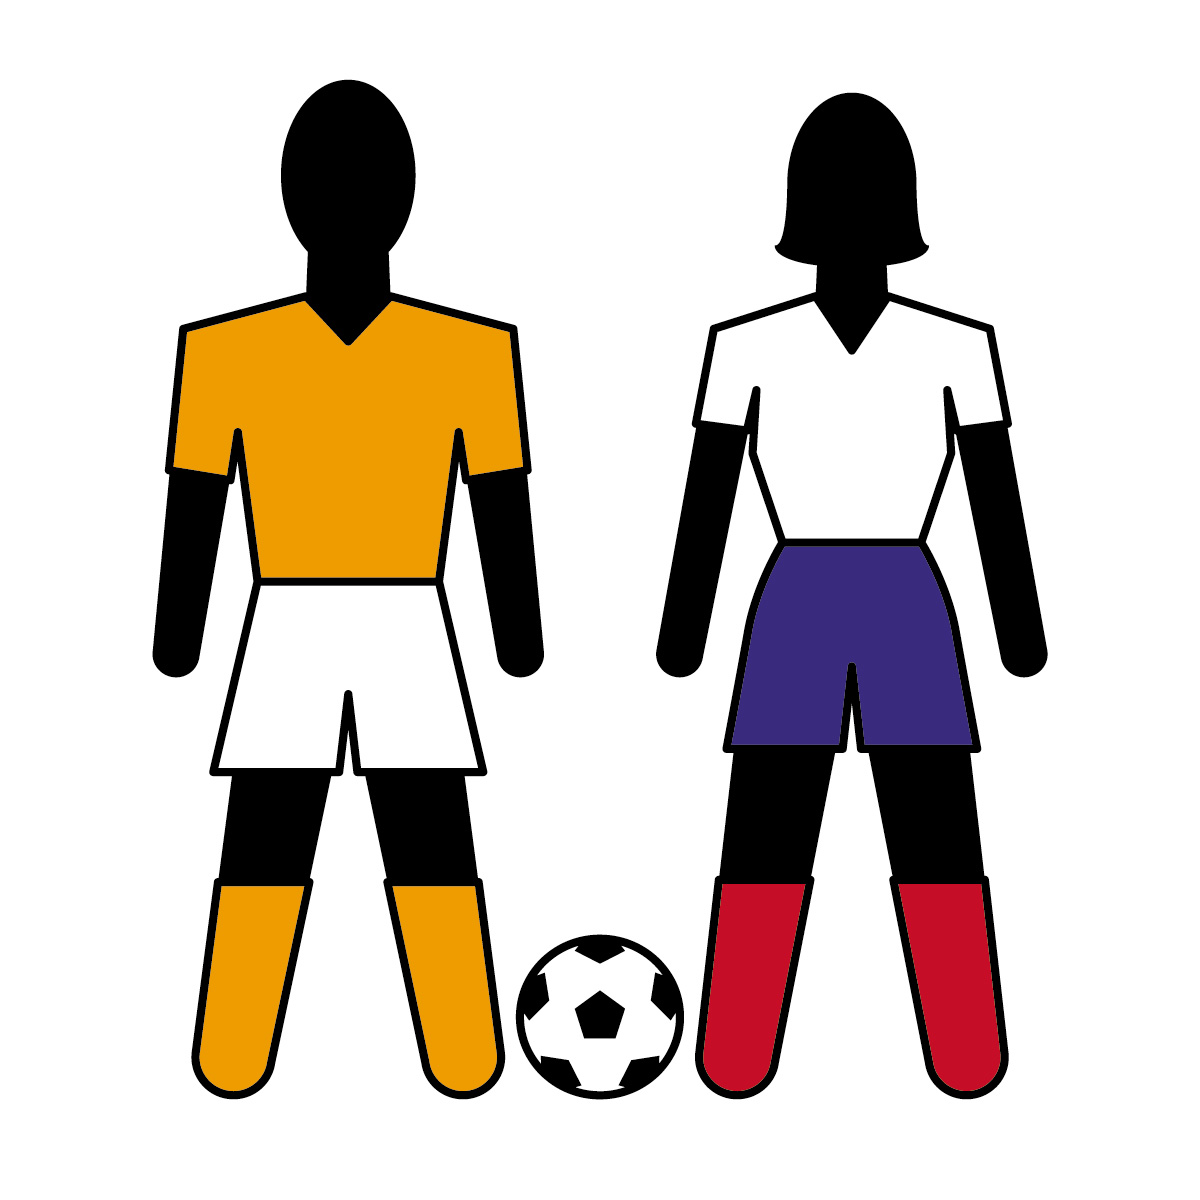 Soccer clipart athletic boy Player Clipart Football Images Clipart